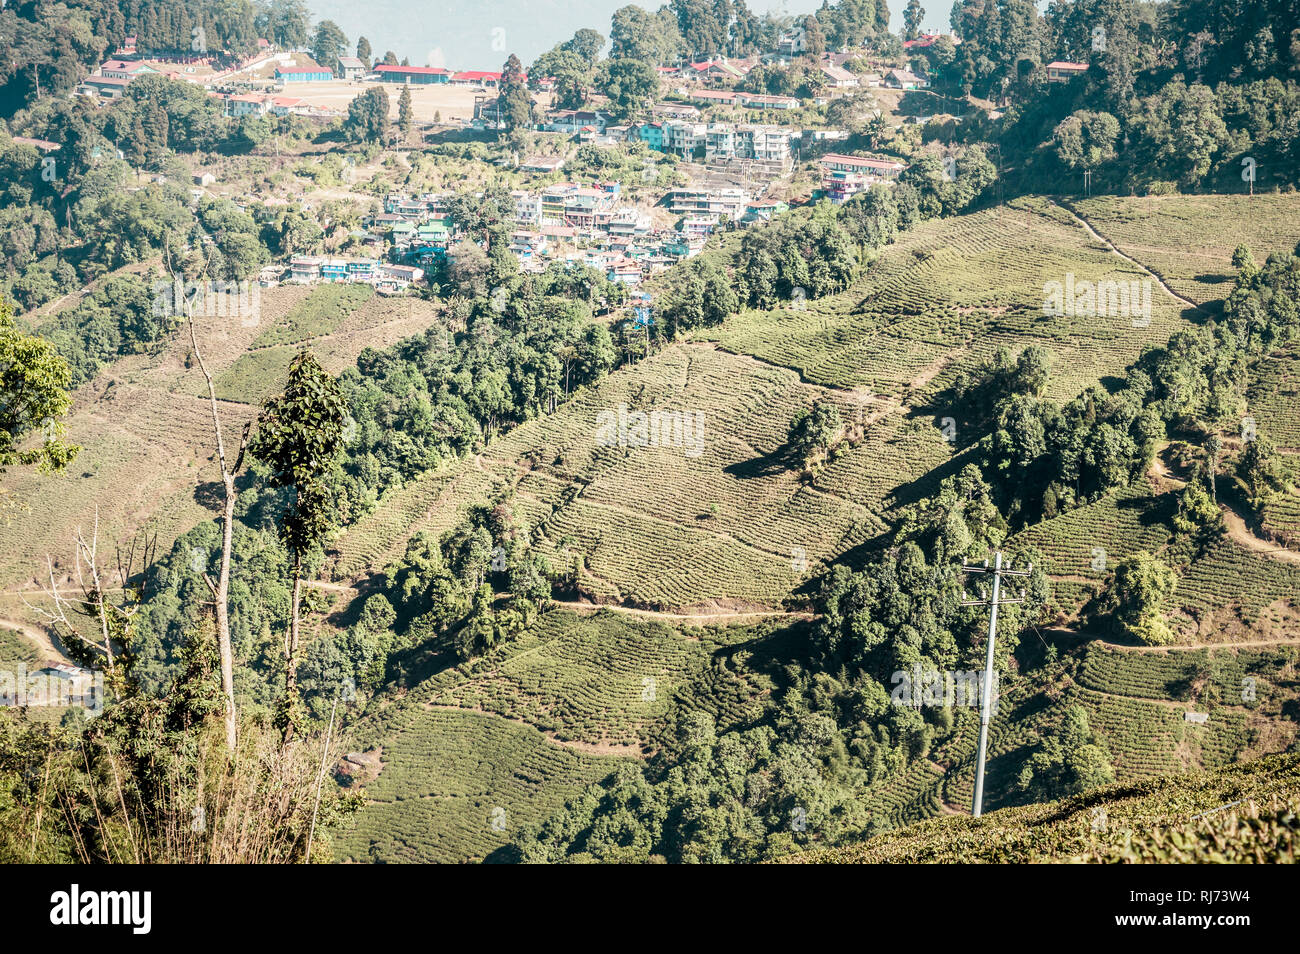 The relief landscape of the tea plantation. 'Kanan Devan Hills Plantations, Munnar' Located in Idukki district in Indian state of Kerala. Noted key to - Stock Image